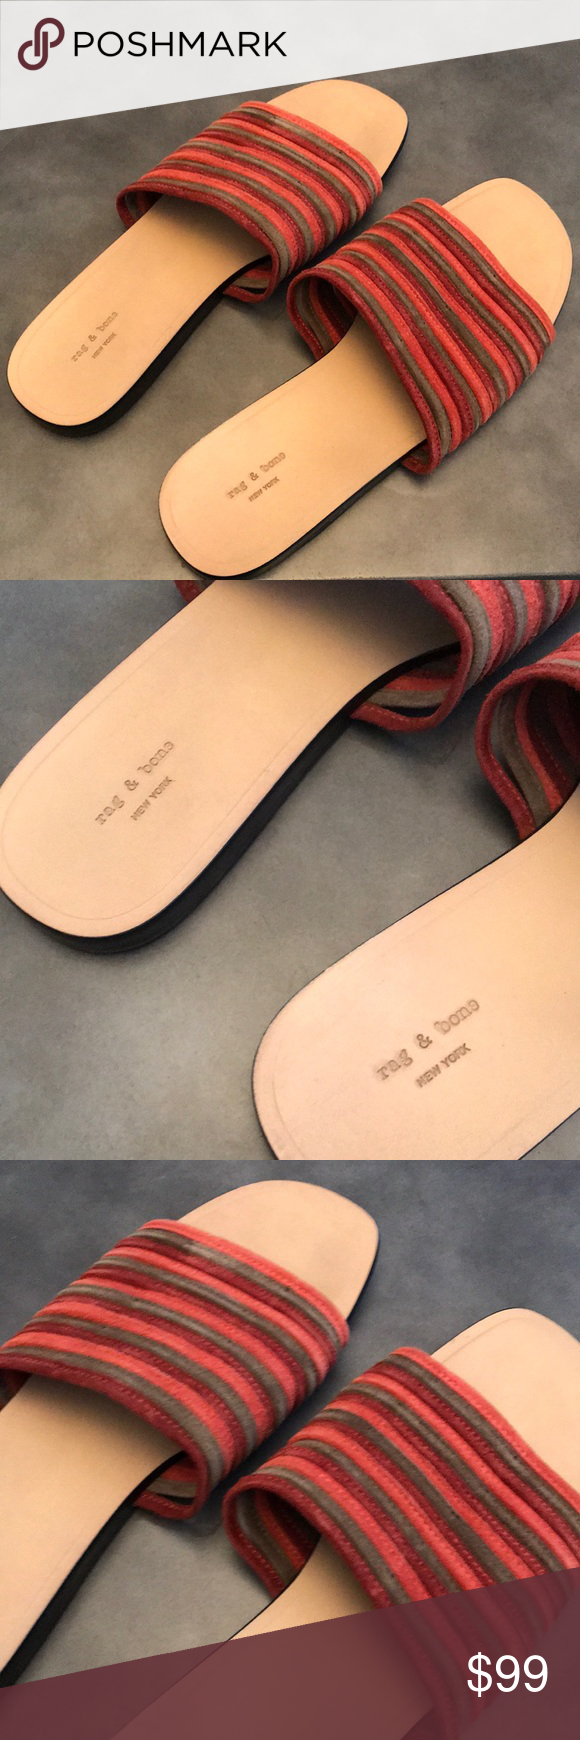 ab45a2f47b9b0a Rag   Bone Cameron Slide Sandal Details Perfectly aligned mignon straps  stitched from velvety suede bridge